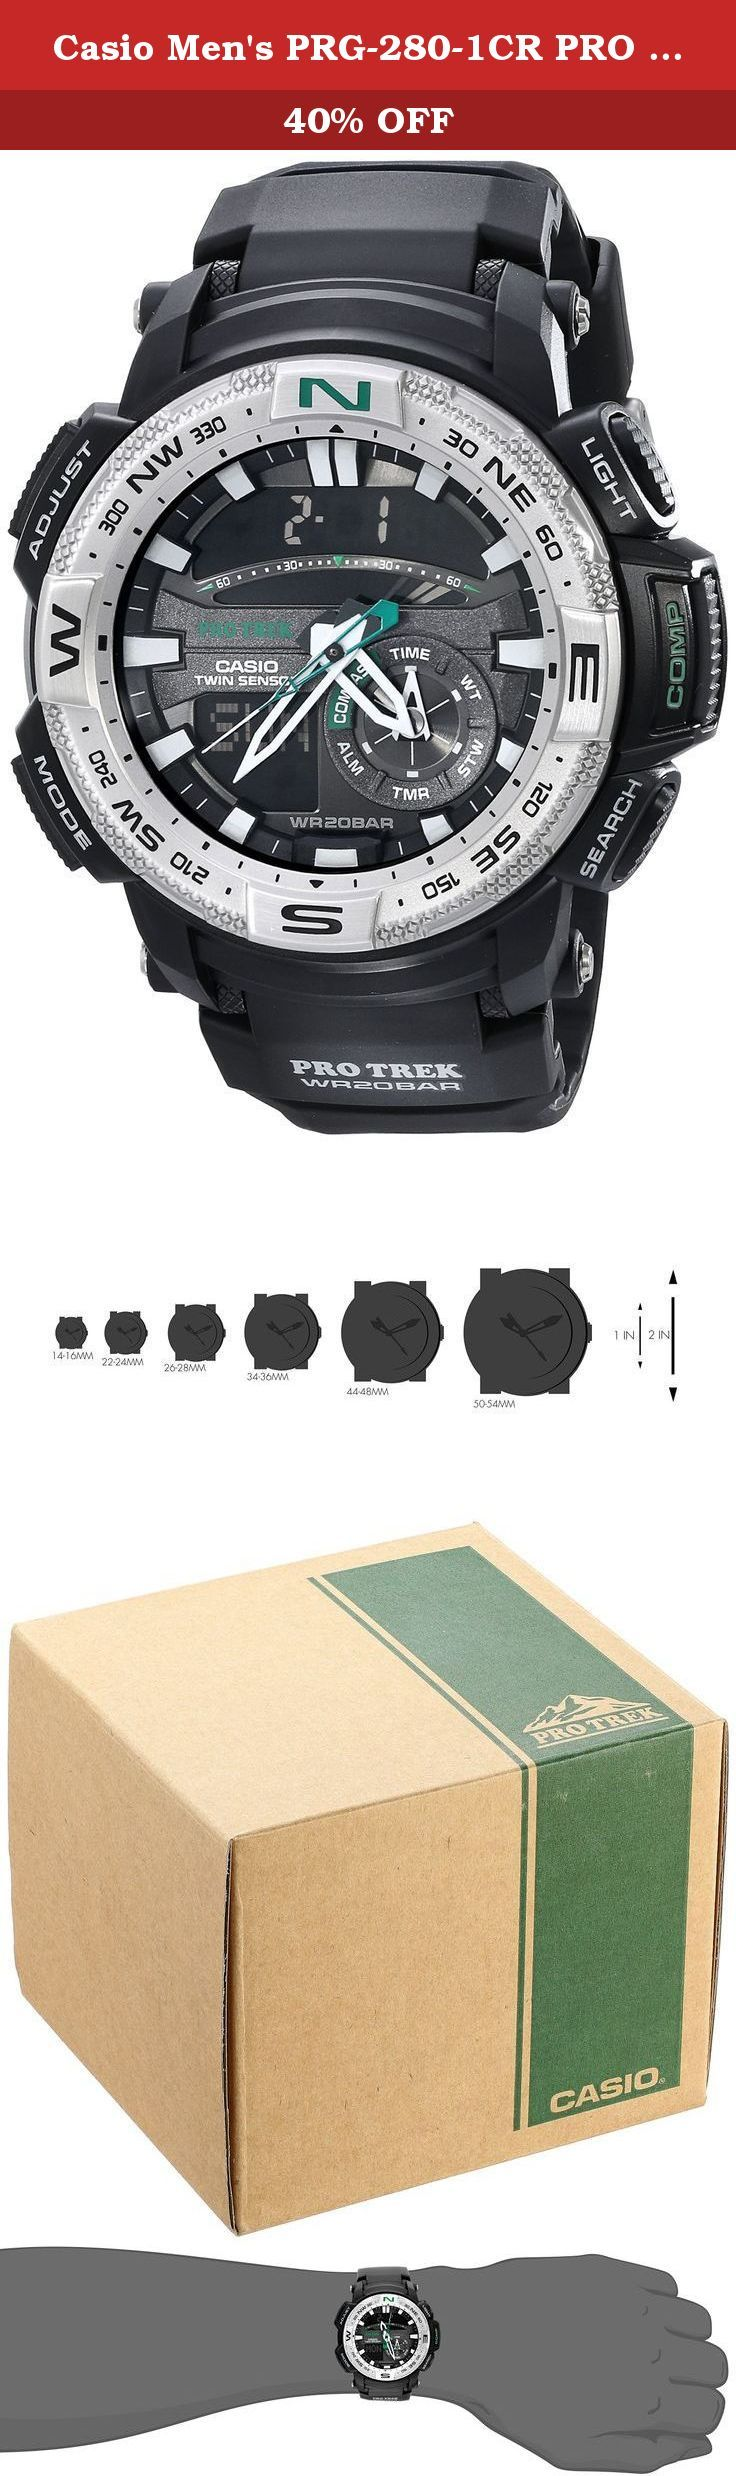 Casio Men's PRG-280-1CR PRO TREK Analog-Digital Display Quartz Black Watch. Casio - ProTrek - Twin Sensor - Thermometer Compass Neobrite Black Resin watch - PRG280-1 - Introducing the Twin Sensor addition to the PRO TREK lineup. Super Illuminator keeps information readable even in the dark, while one-push button operation for sensor functions and display illumination enable easy operation. Other features include 200 meter water resistance and low-temperature resistance for plenty of...